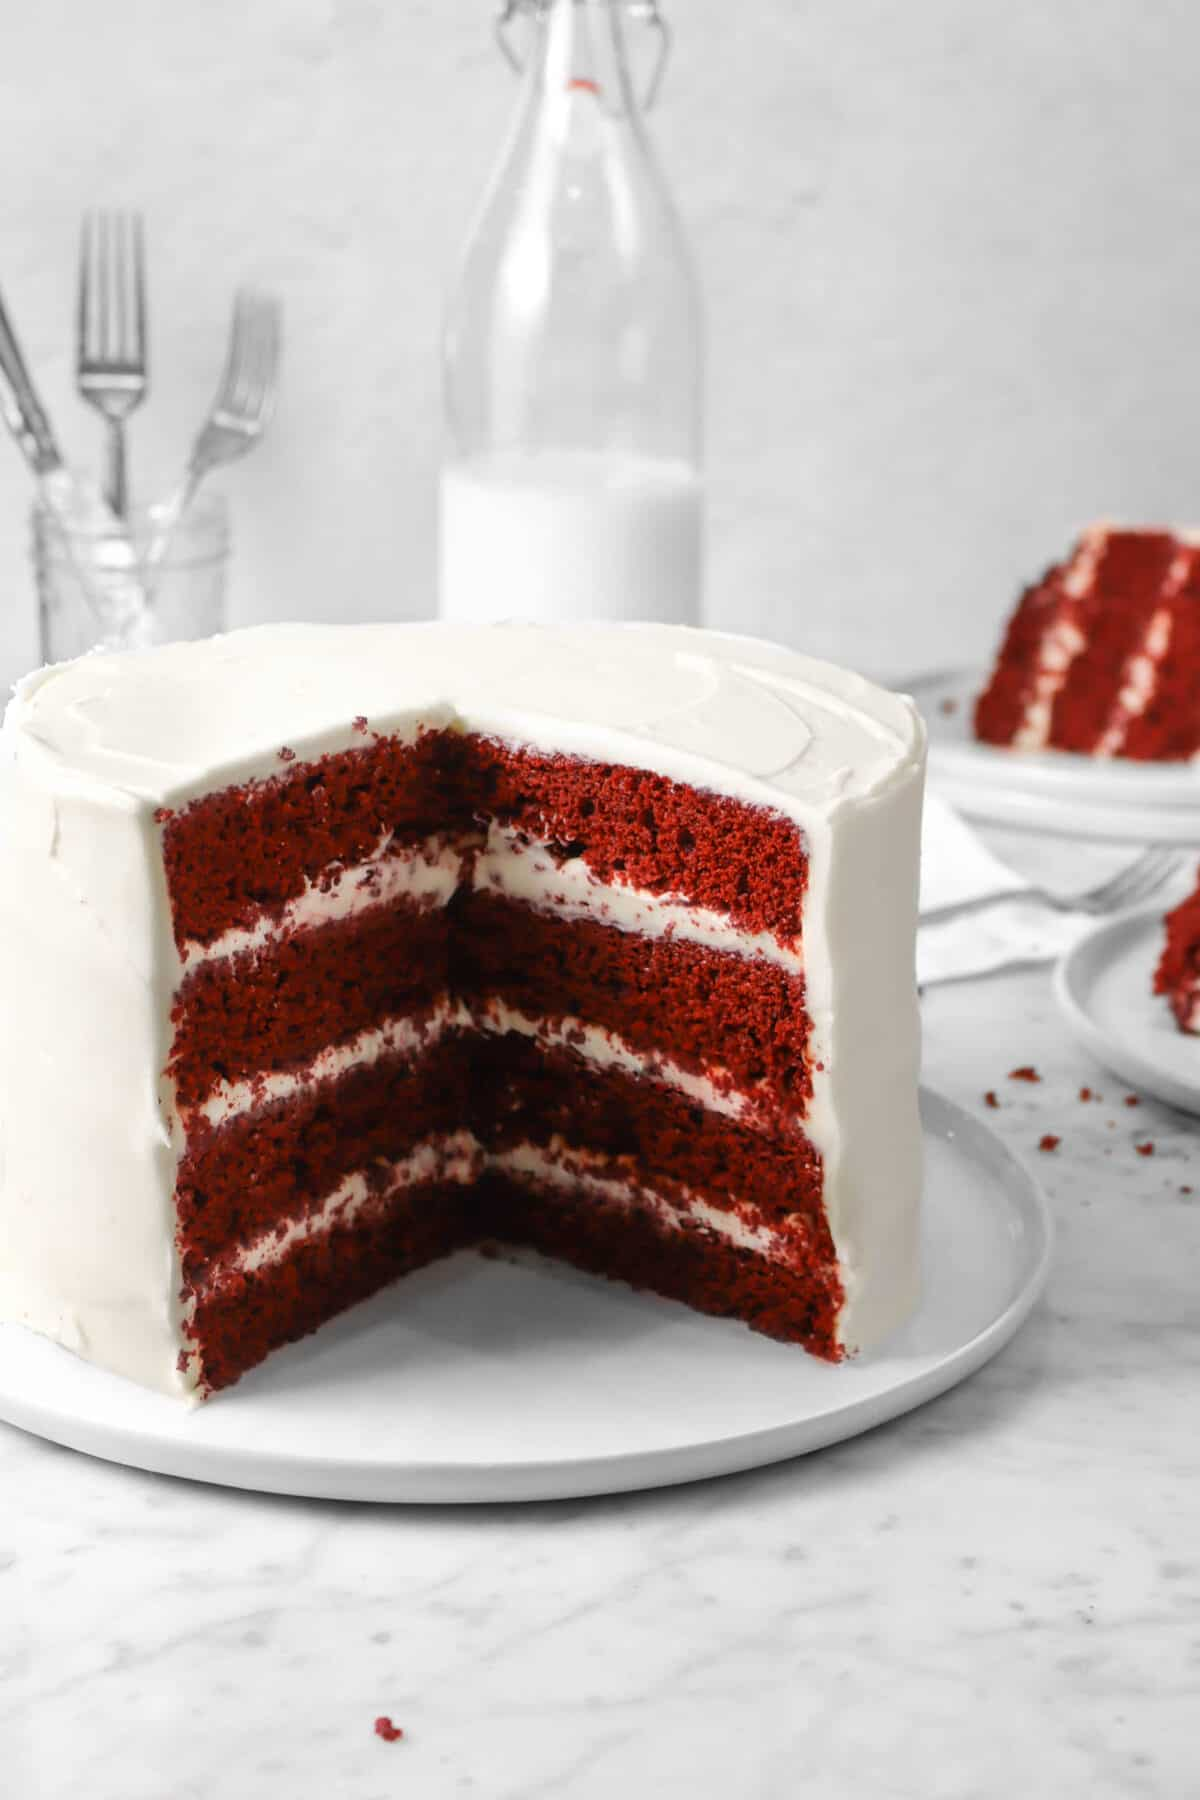 red velvet cake on a white plate with a jug of milk, a slice of cake, and a jar of forks